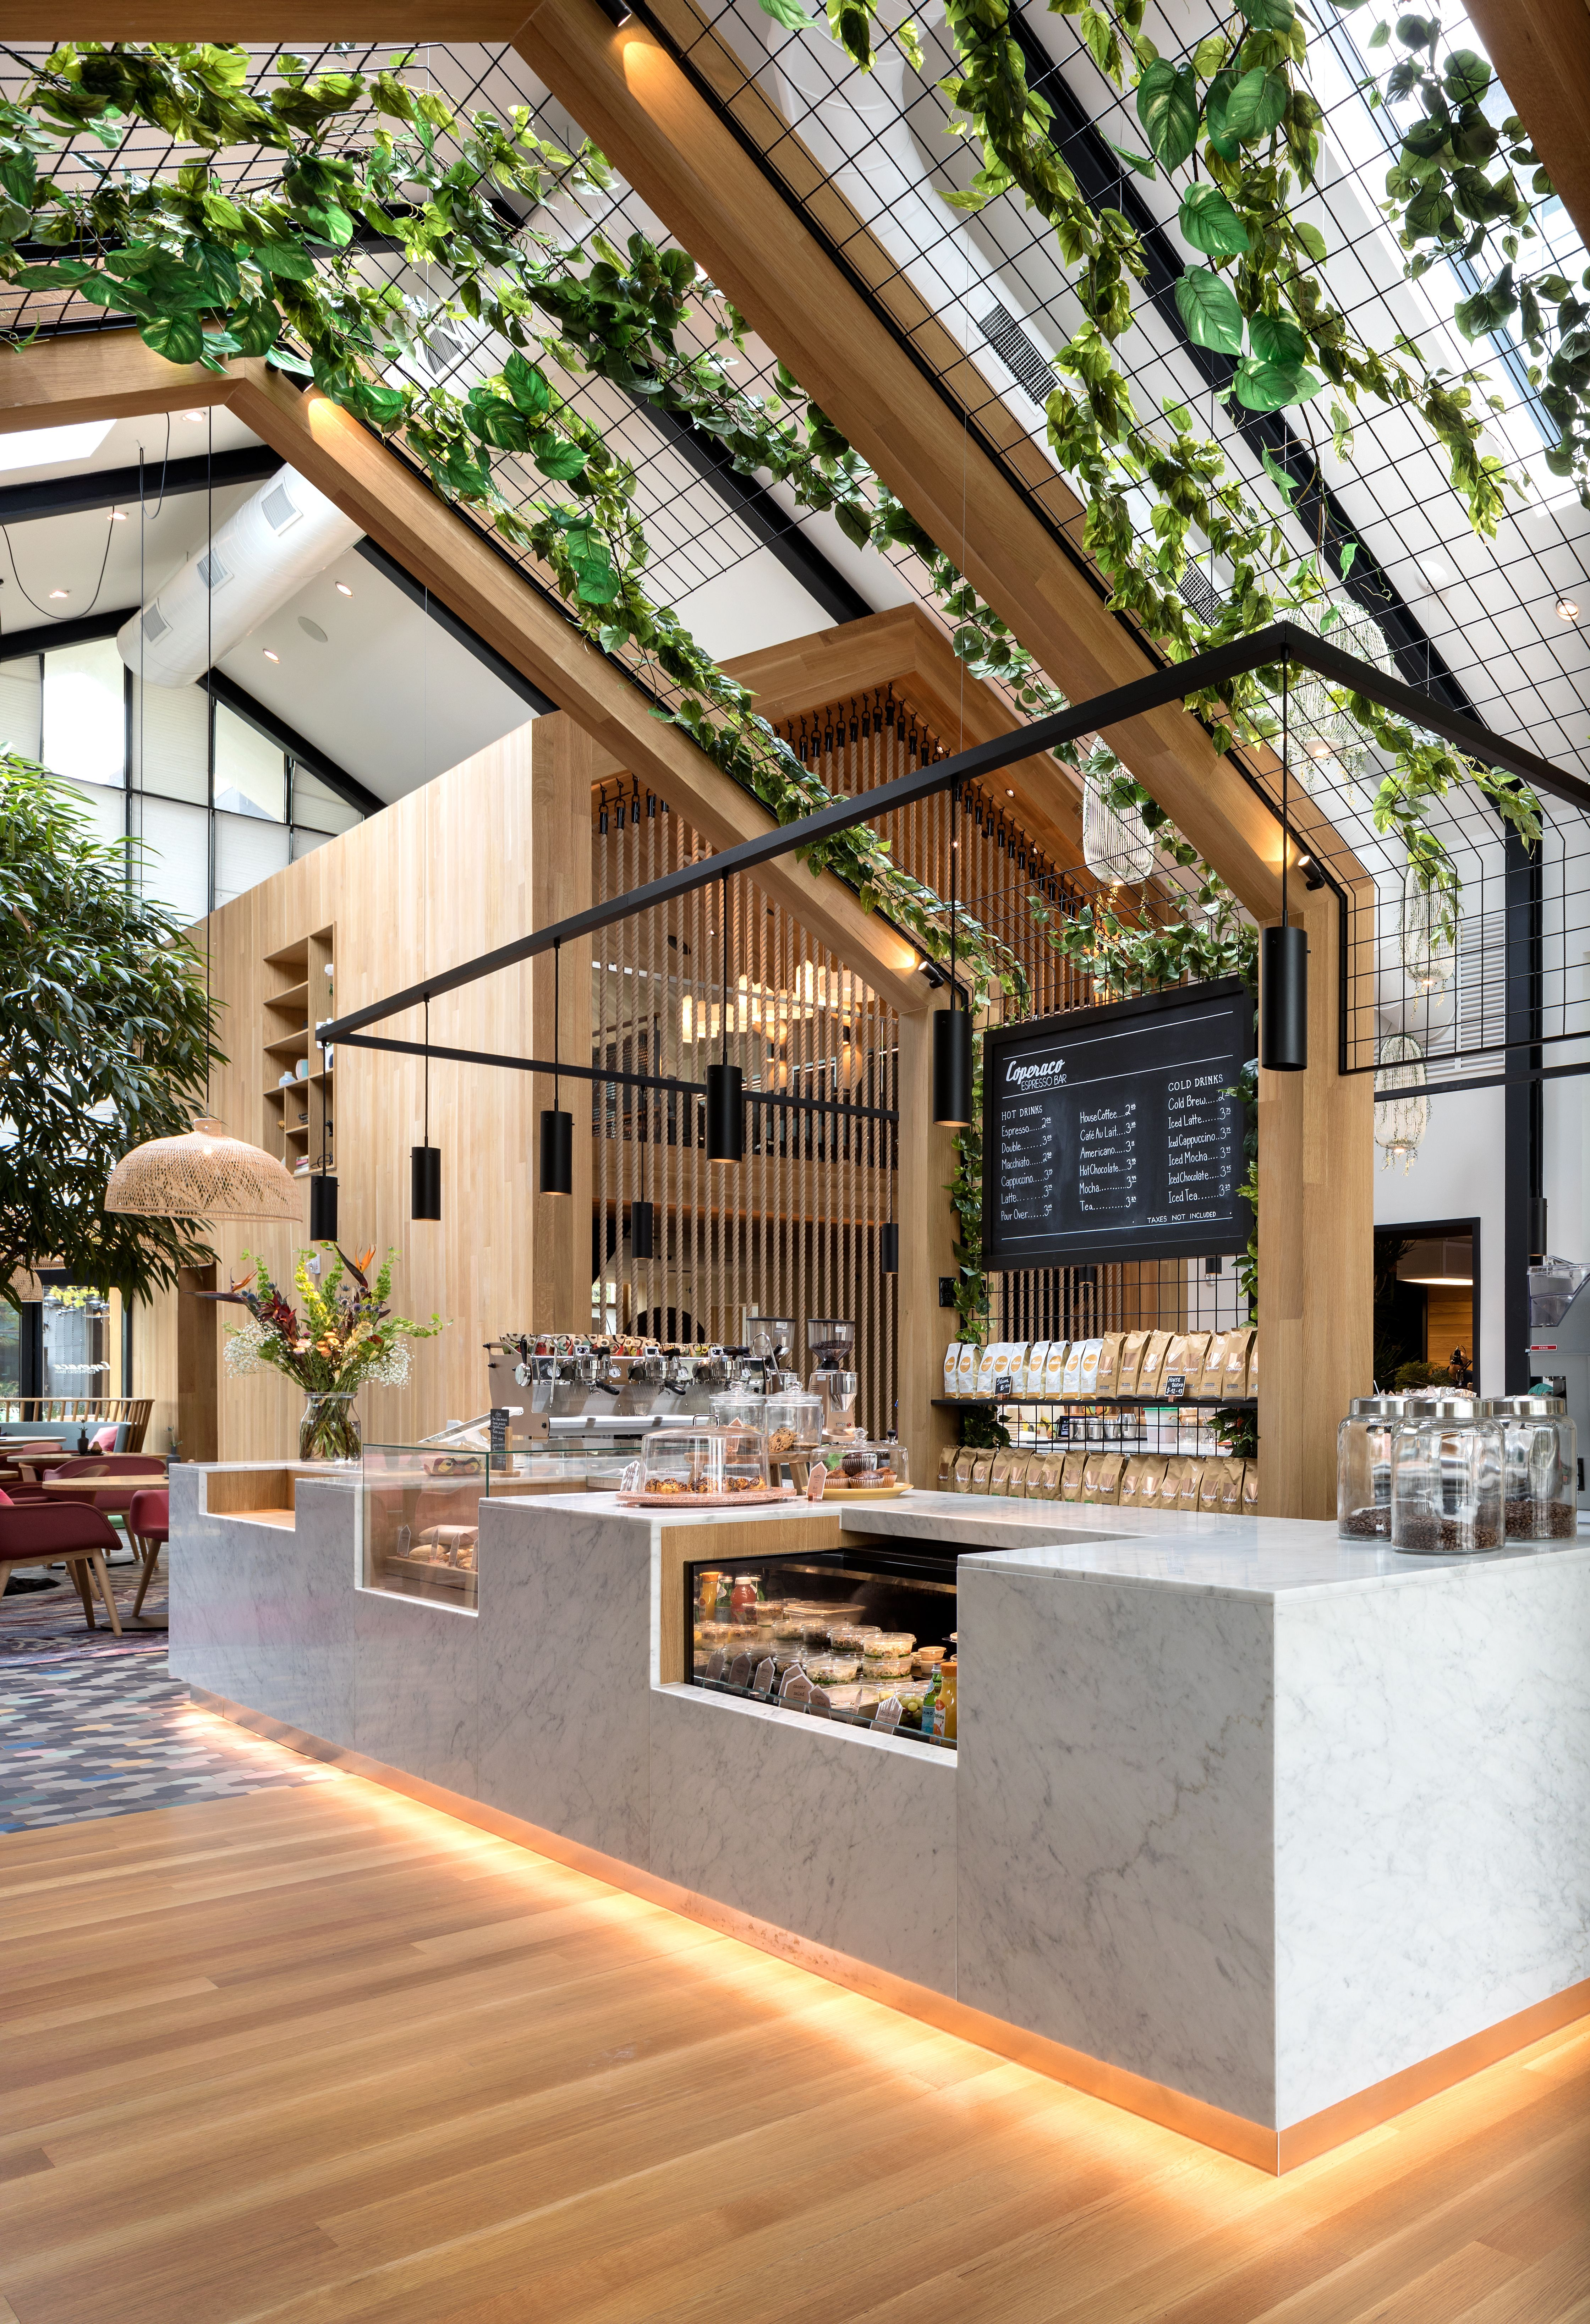 Photo 6 Of 7 In Boutique Coffee Roaster Coperaco S First Cafe Holds A Modern Tree House Restaurant Design Coffee Shops Interior